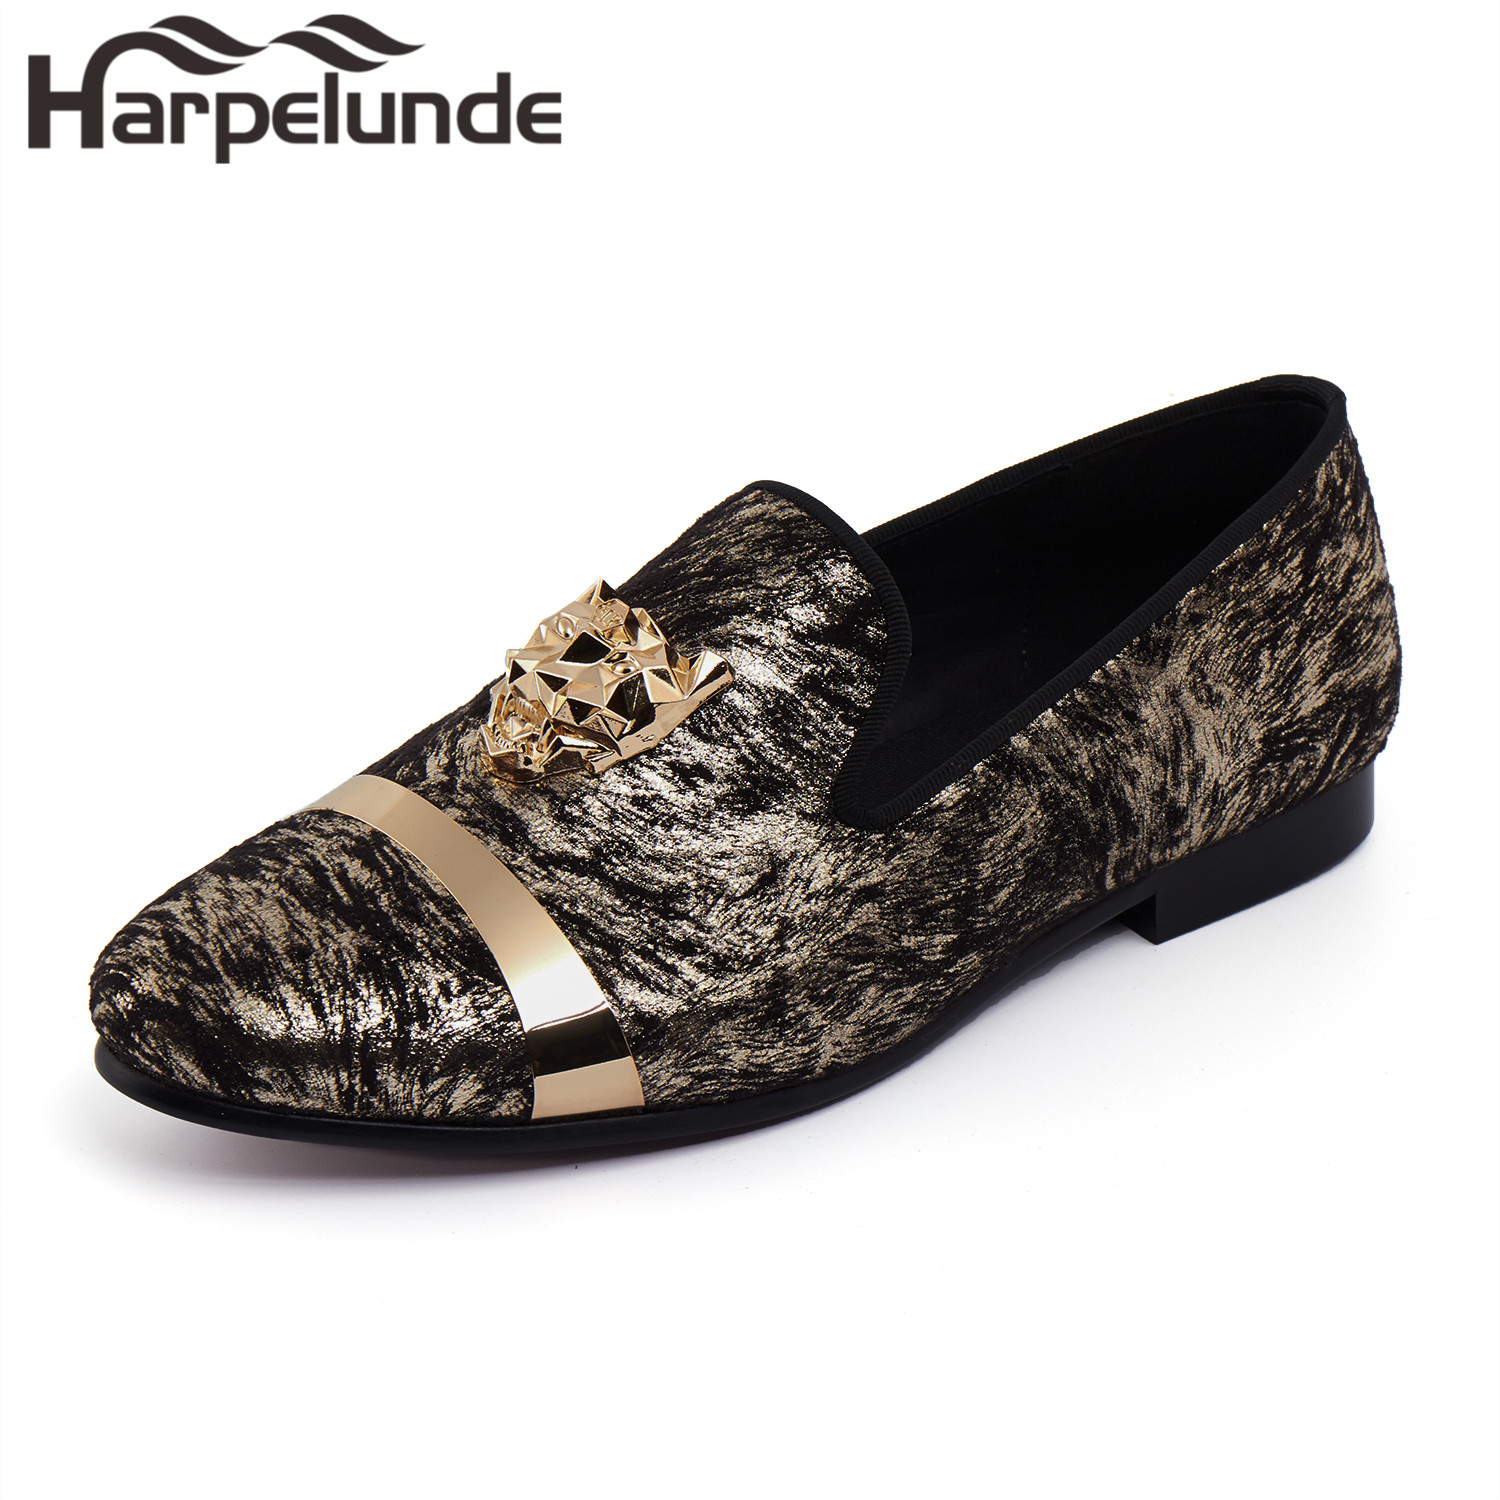 Harpelunde Animal Buckle Men Wedding Dress Shoes Printed Velvet Loafer Flats With Gold Plate Size 6 To 14